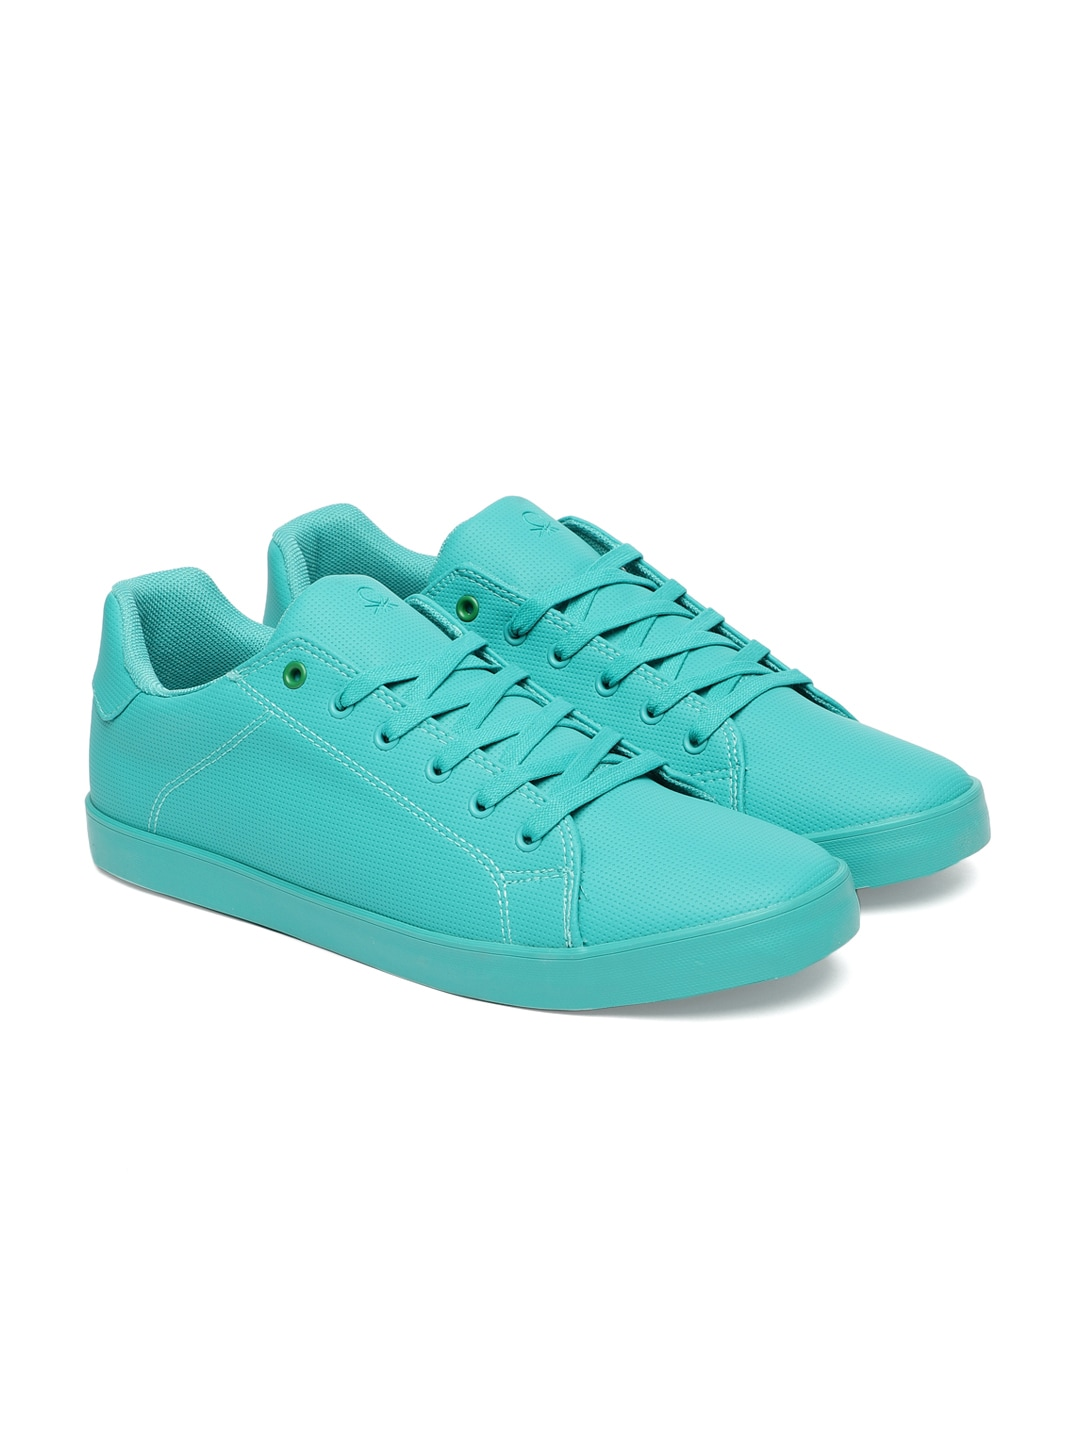 2672a84b4 Green Shoes - Buy Green Shoes Online in India